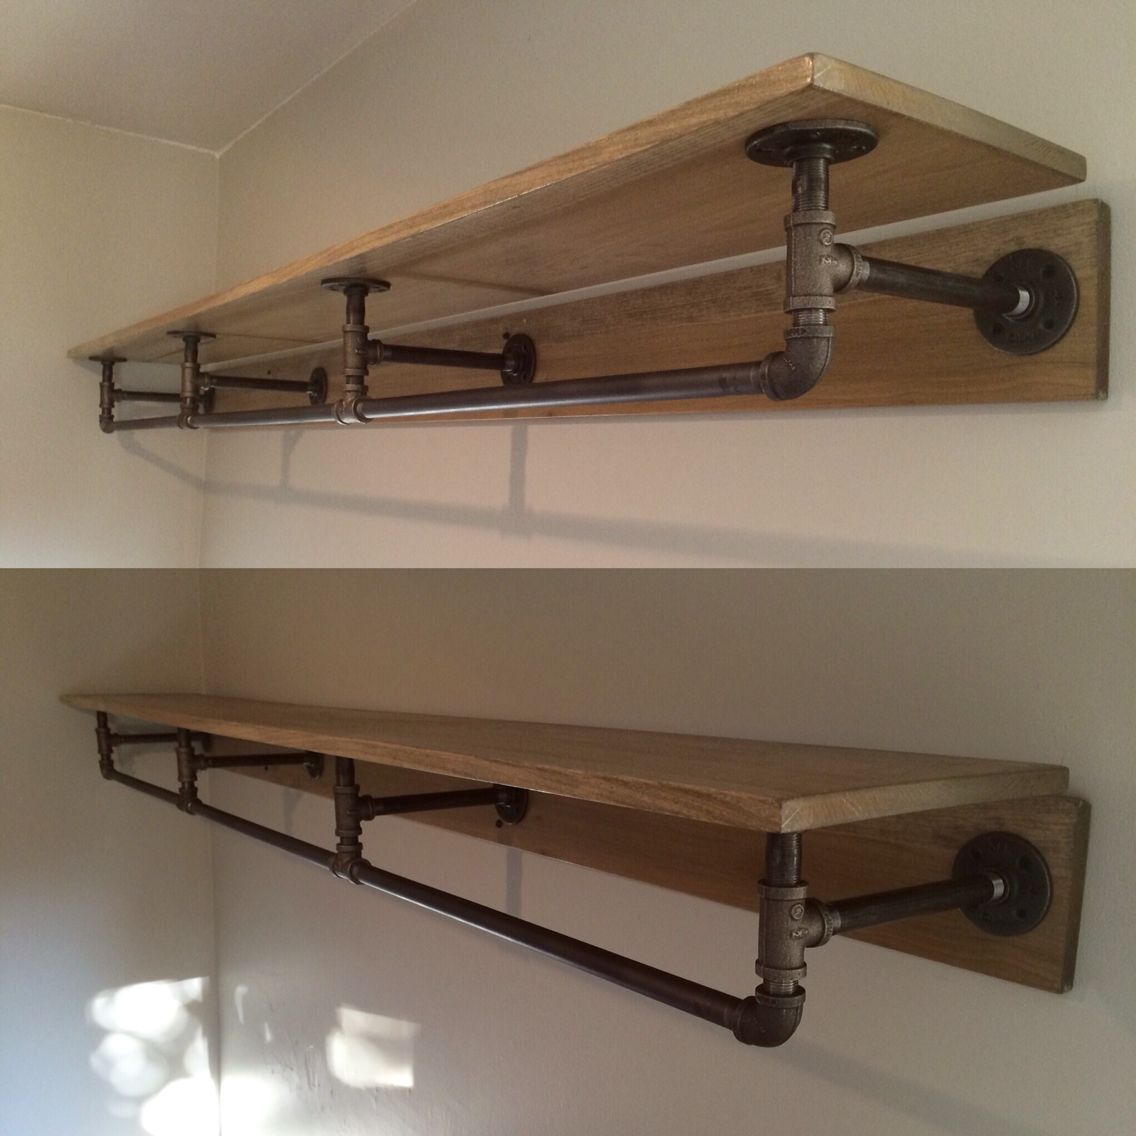 Pipe shelving. Made from metal piping and stained wood